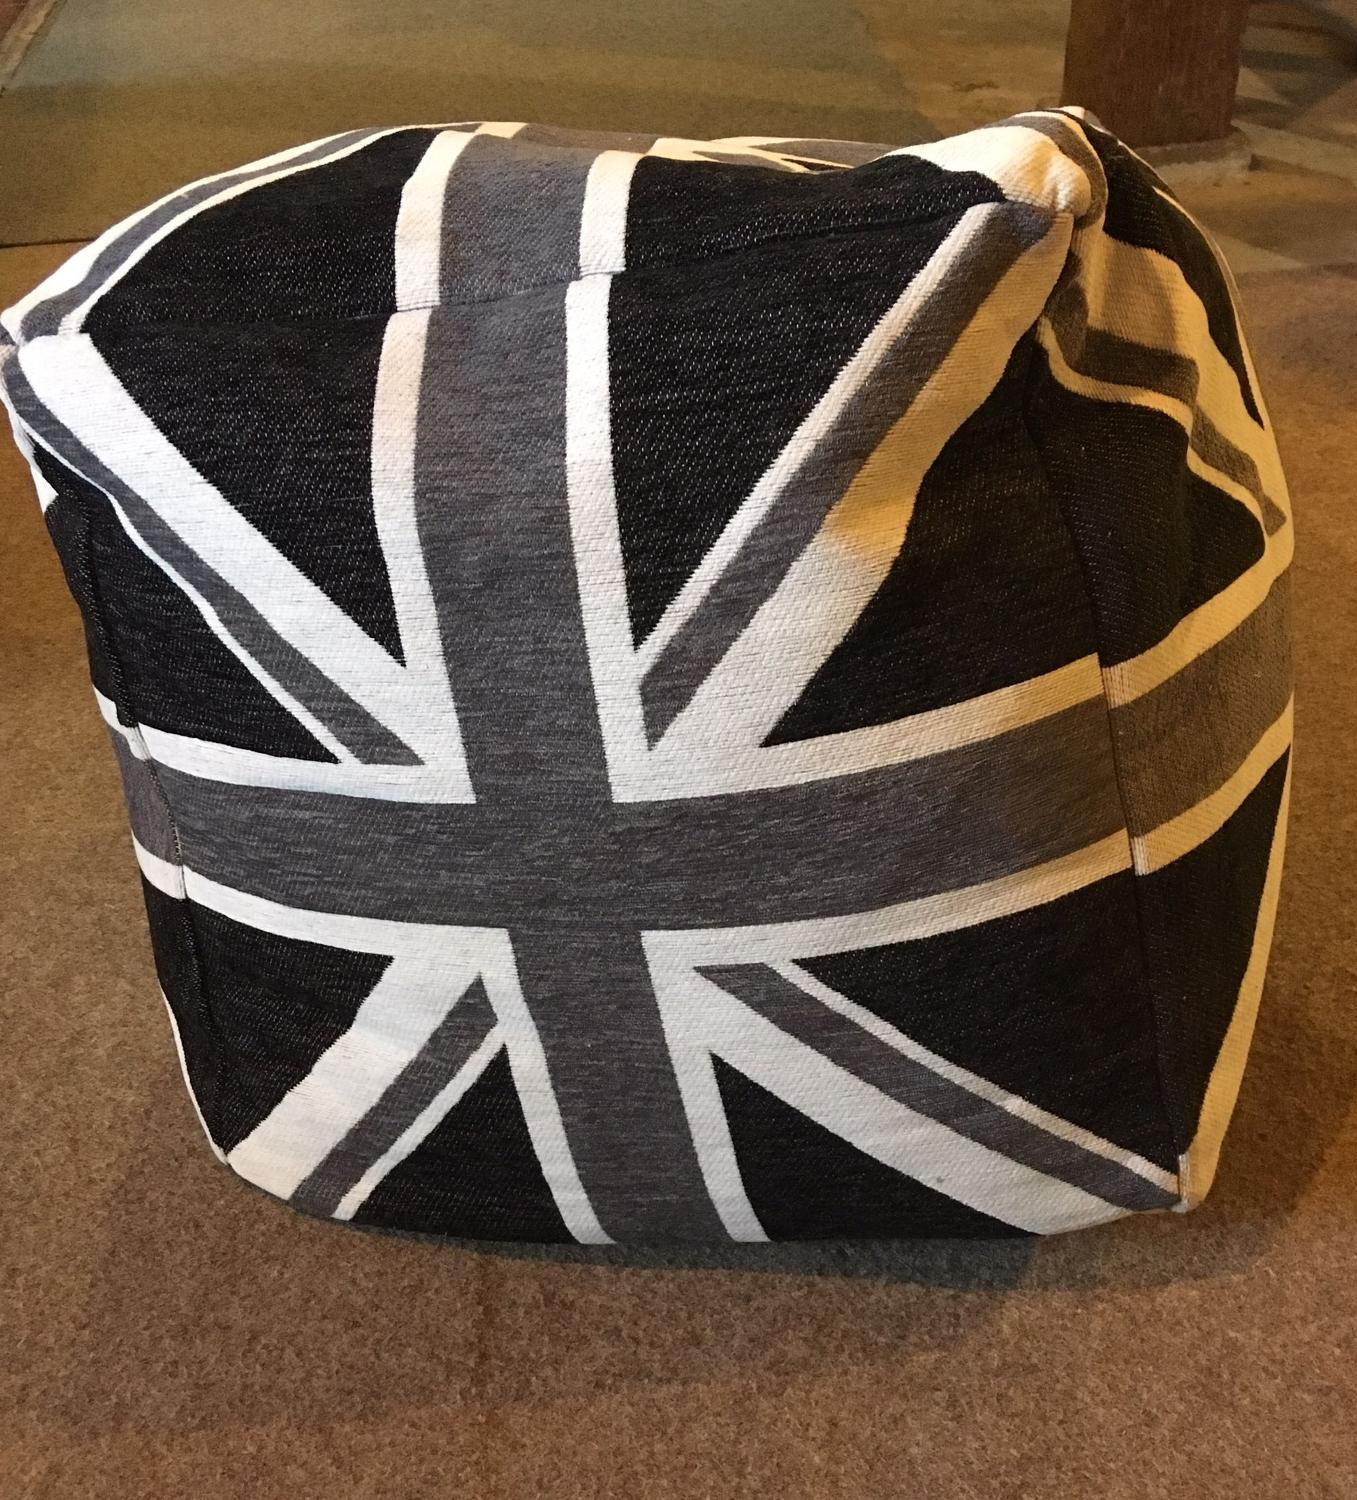 Find More Square Union Jack Bean Bag Chair For Sale At Up